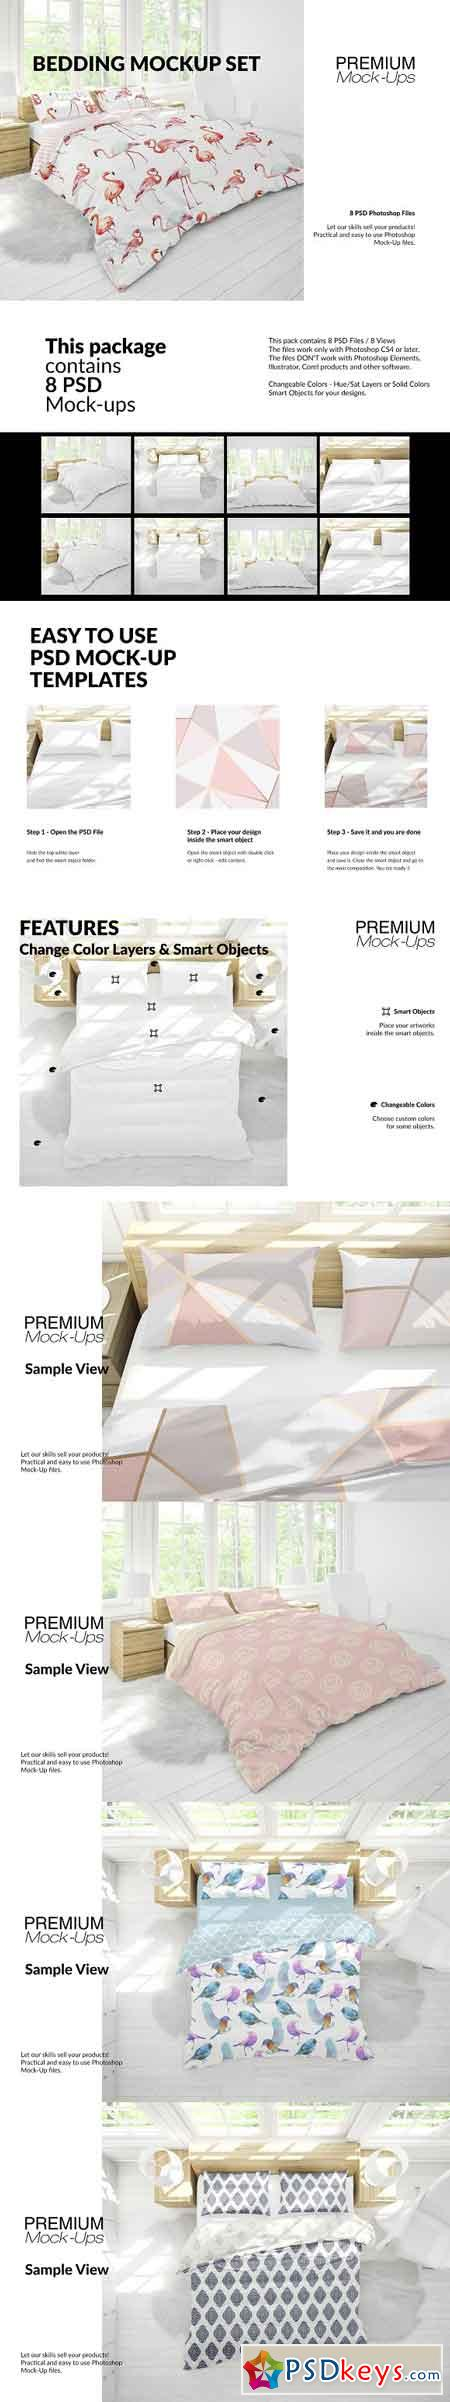 Bedding Mockup Set 2930610